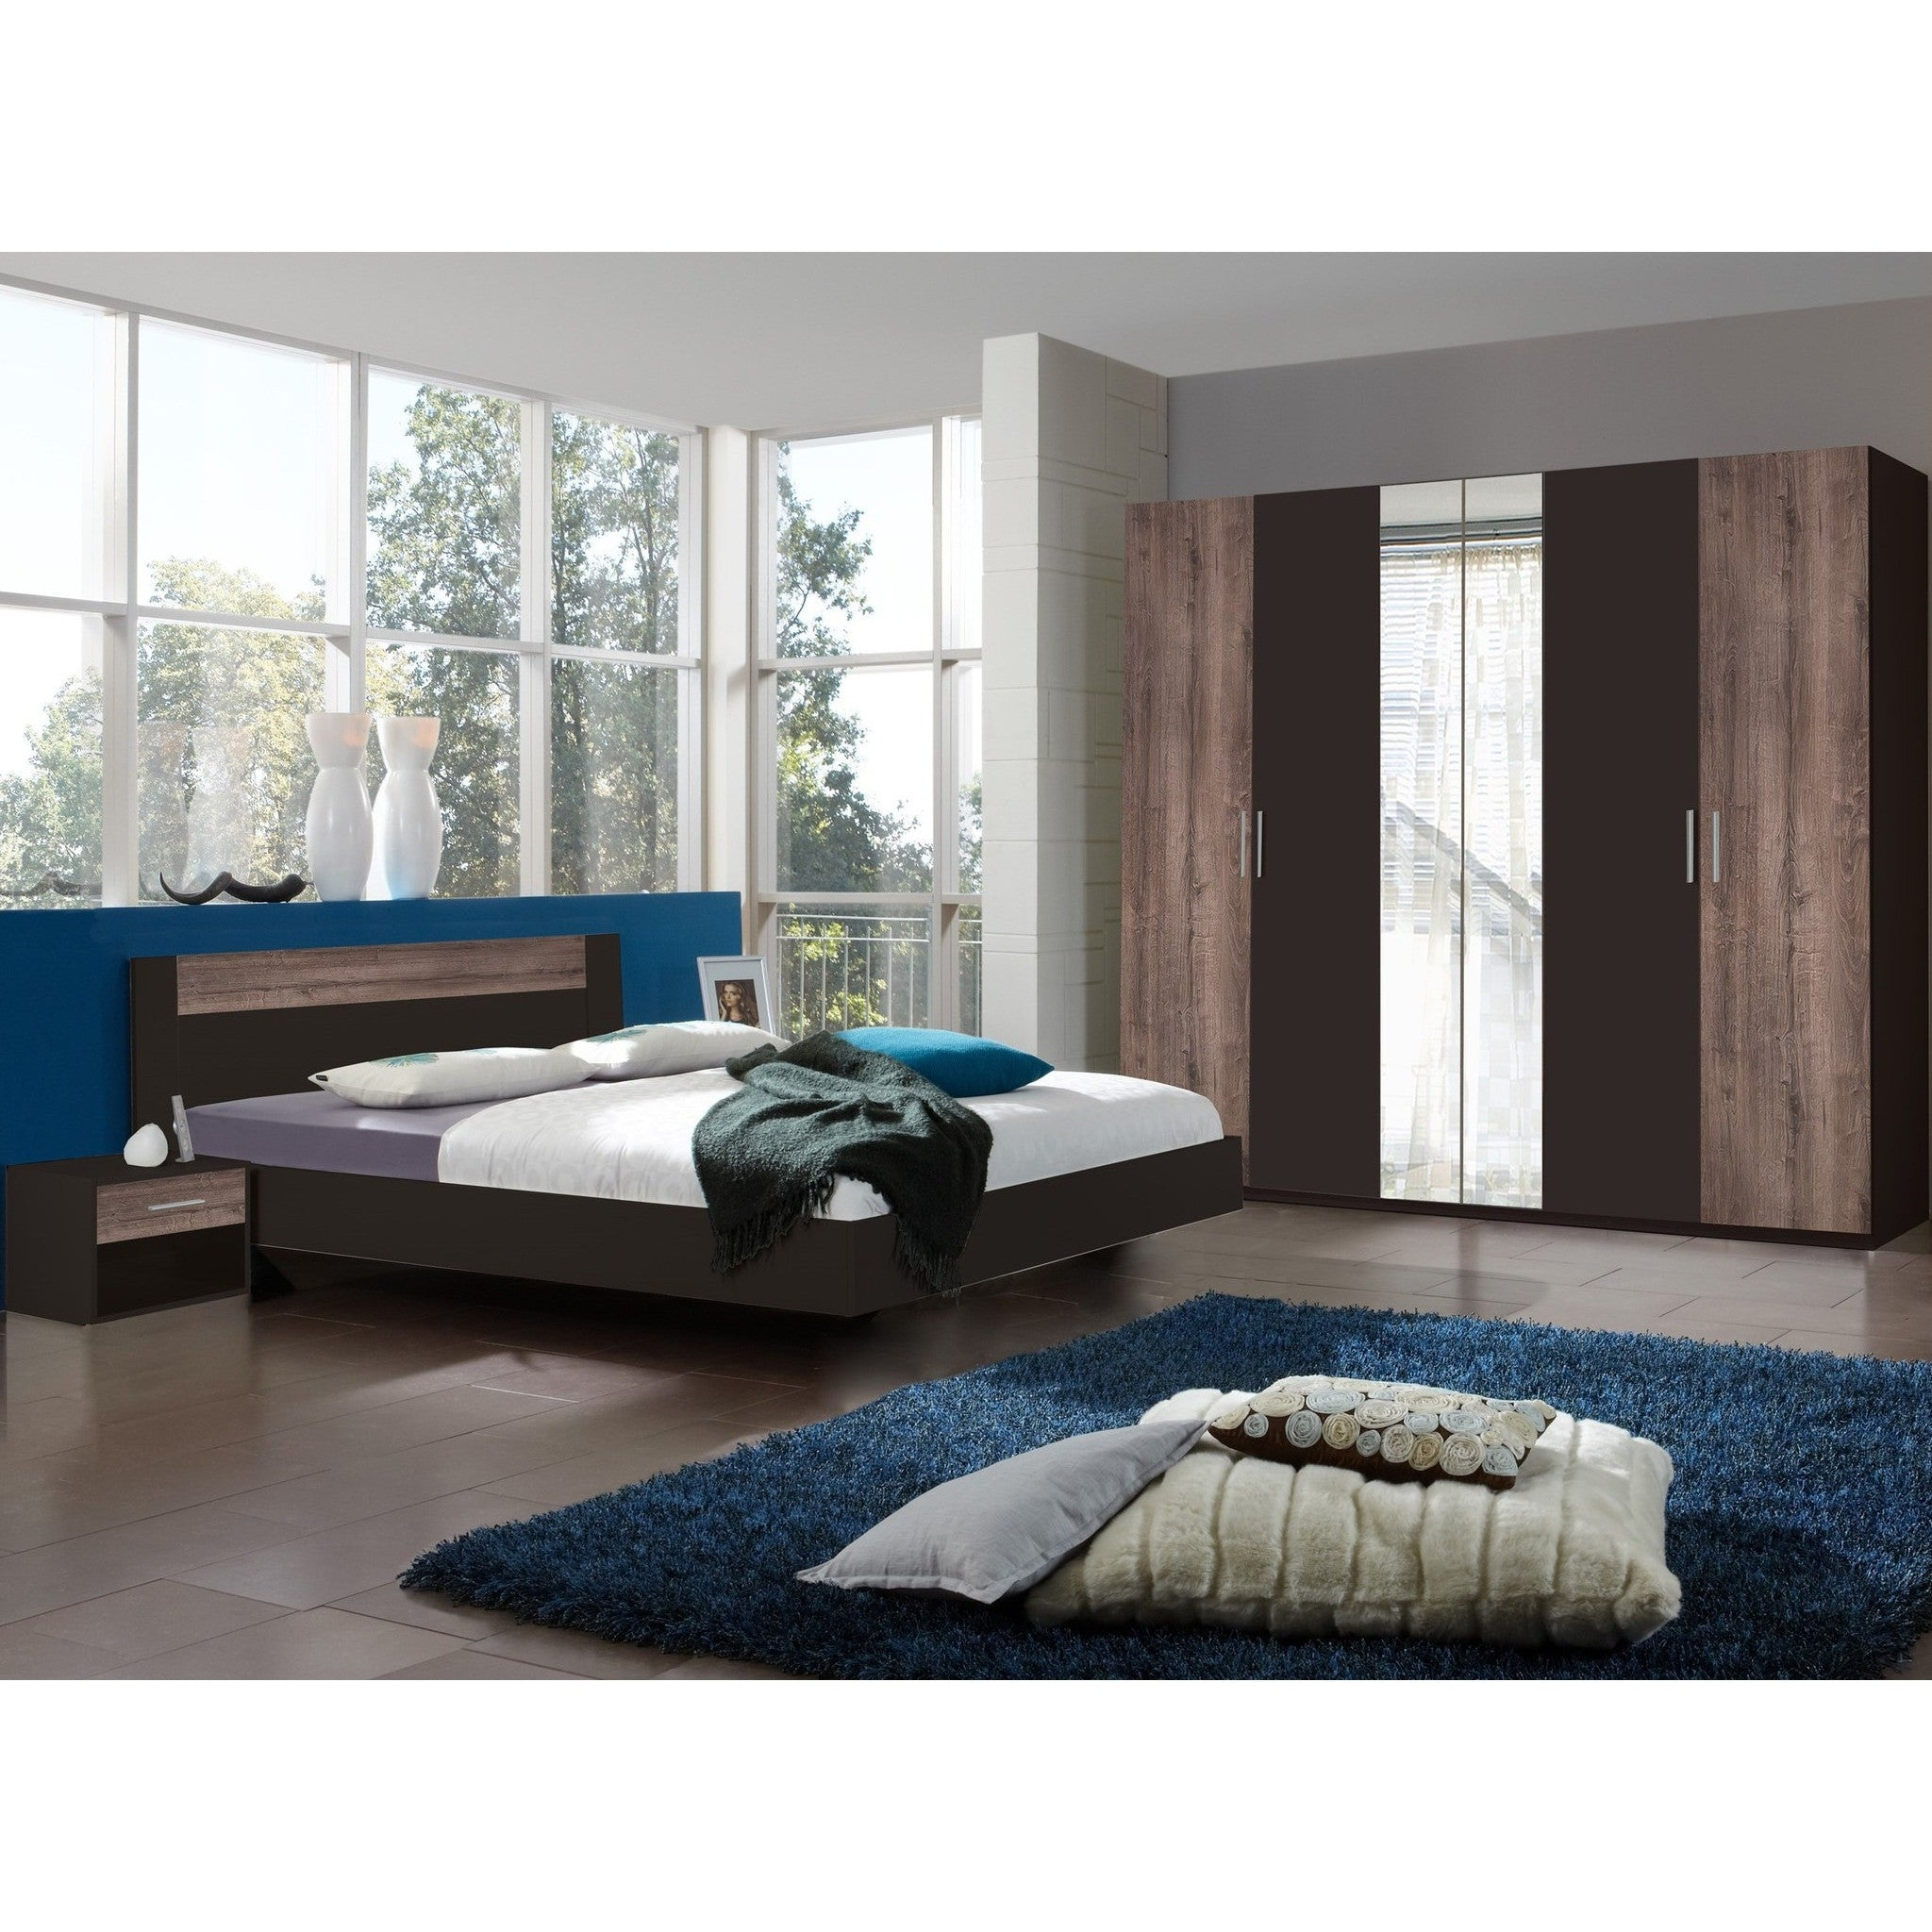 Qmax Liana Range German Made Bedroom Furniture Lava